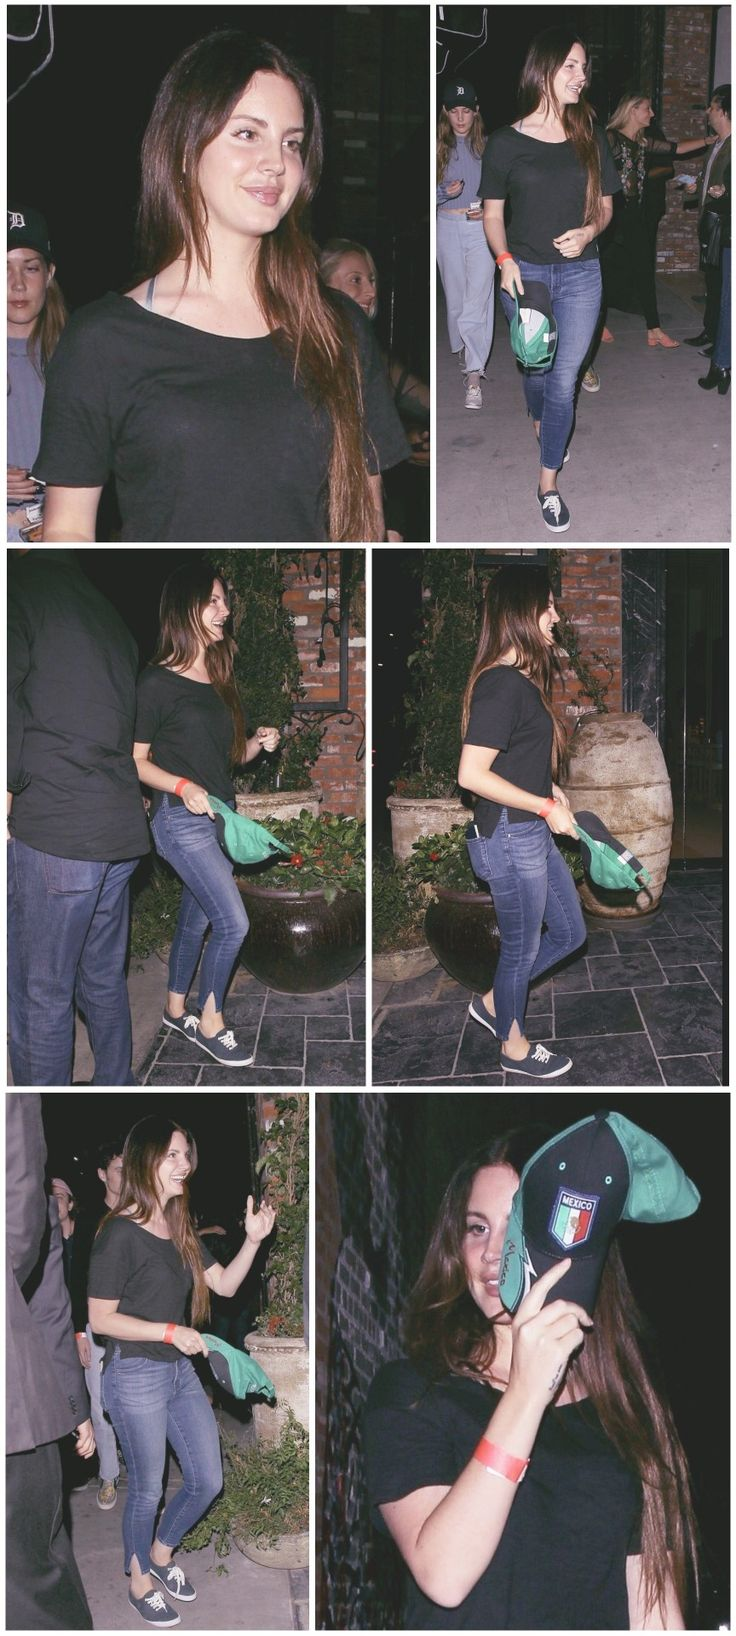 June 20, 2017: Lana Del Rey, accompanied by Chuck Grant and Stella Fabinho, visit the TAO Restaurant in Hollywood for a birthday dinner #LDR